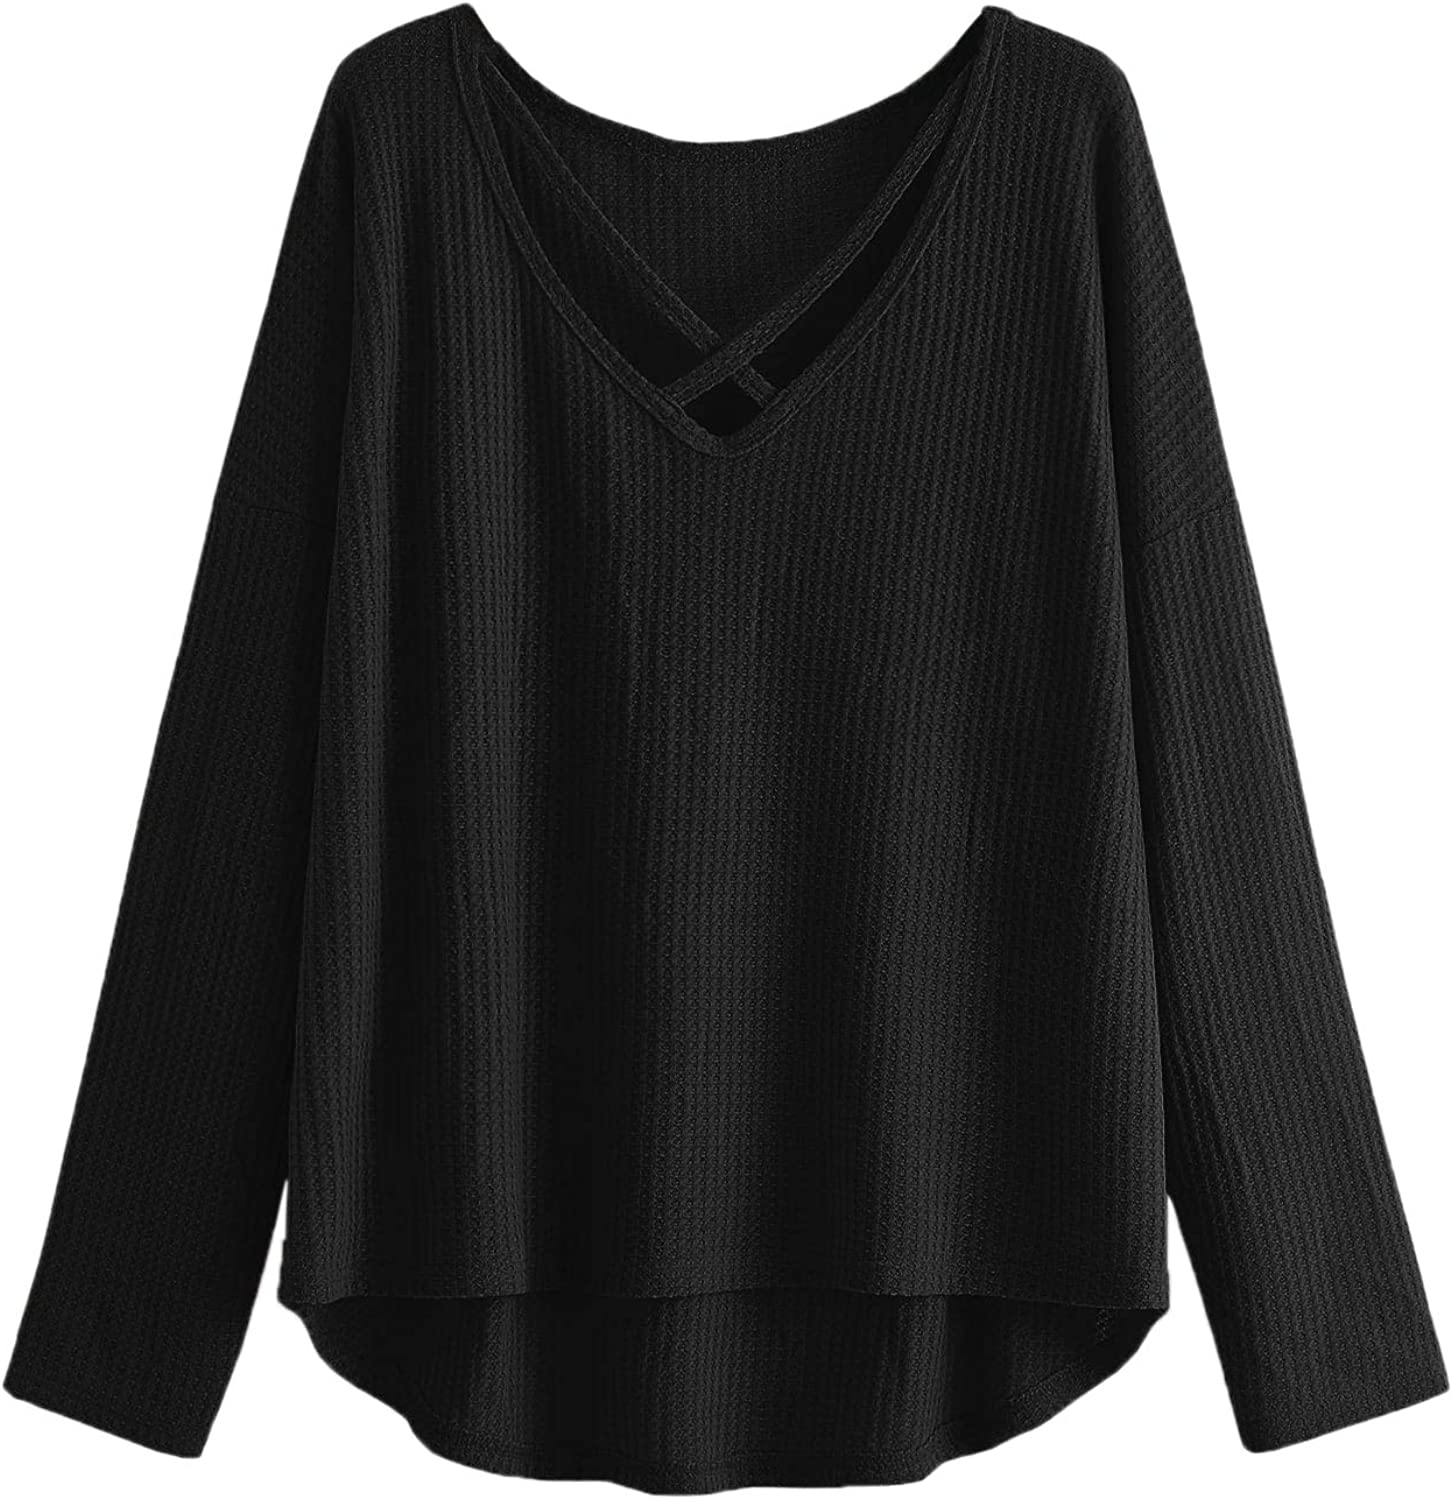 ROMWE Womens Plus Size Casual V Neck Criss Cross Long Sleeve Drop Shoulder Sweater